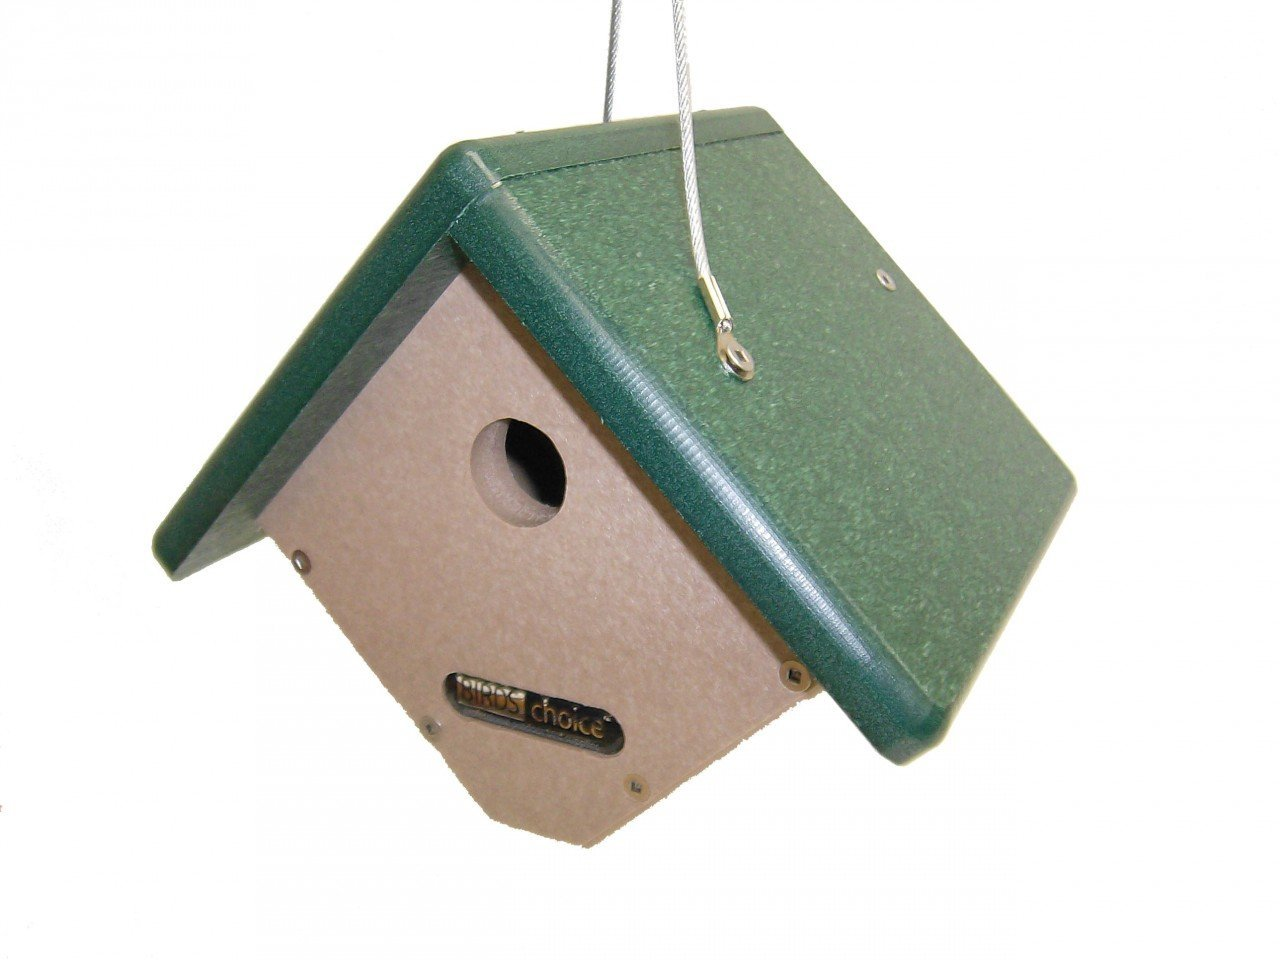 Birds Choice SNPT Recycled Pole-Topper SNWREN